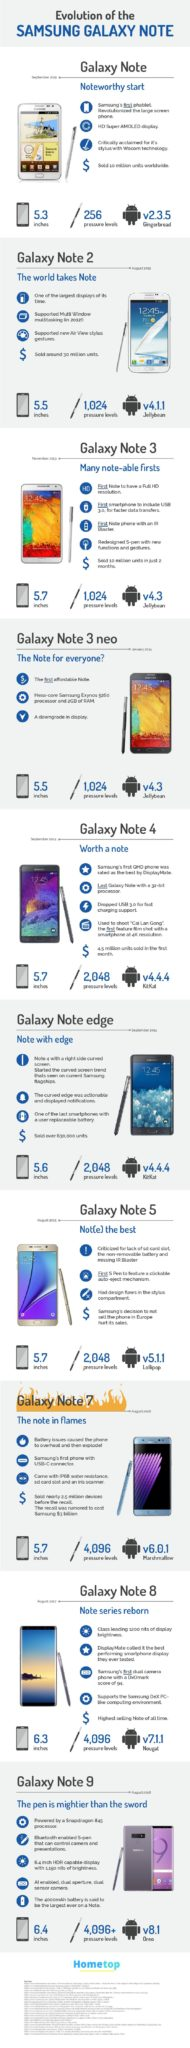 Evolution of the Samsung Galaxy Note